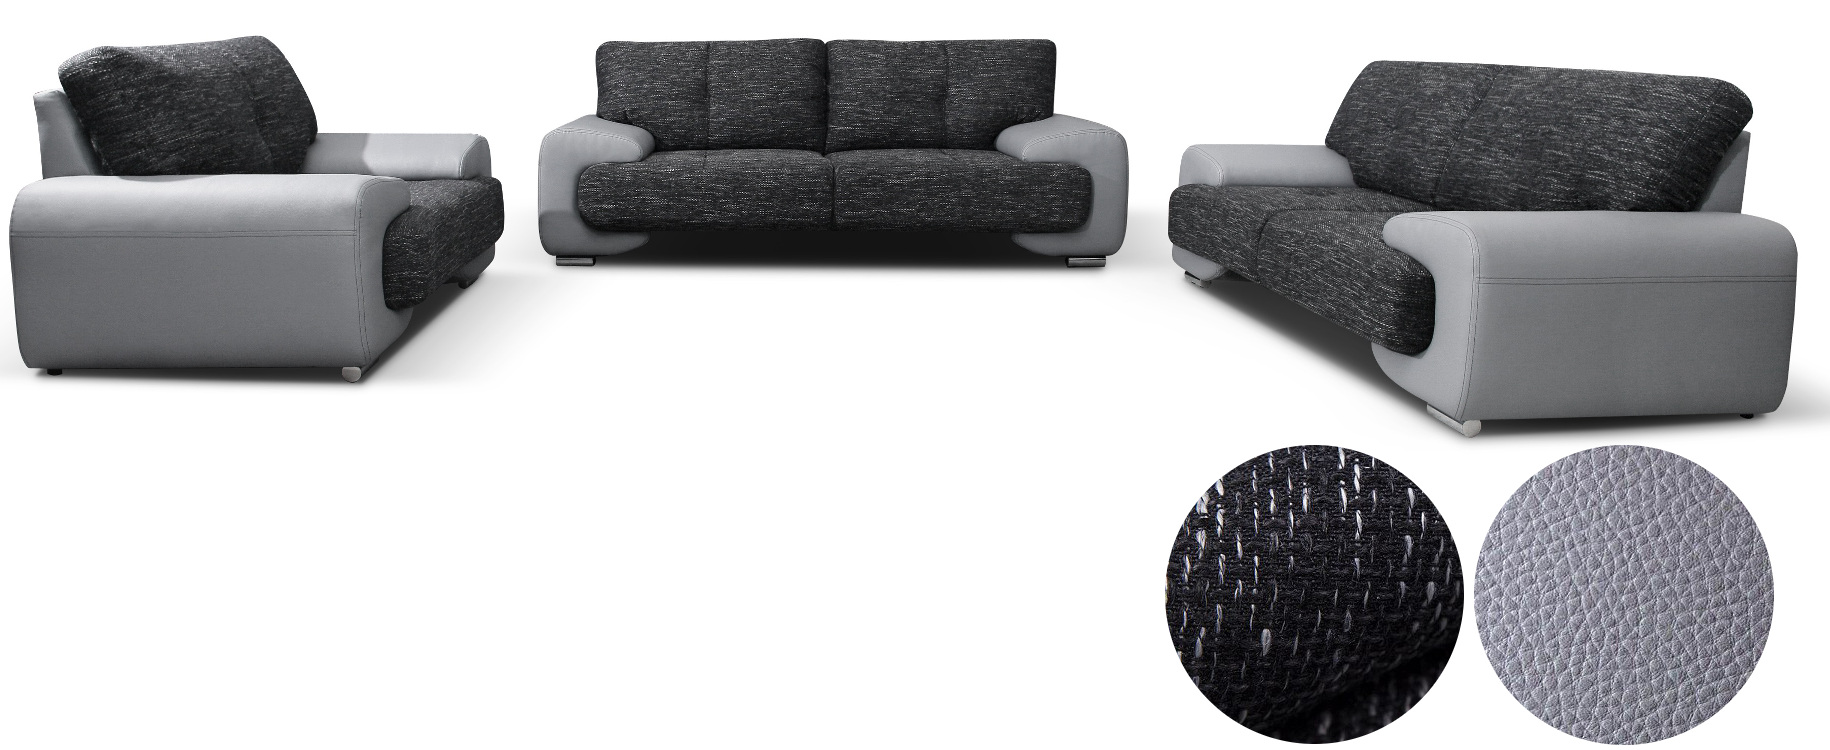 polstergarnitur sofa set couch 3er 2er sessel 3 2 1 kunstleder grau lorento ebay. Black Bedroom Furniture Sets. Home Design Ideas